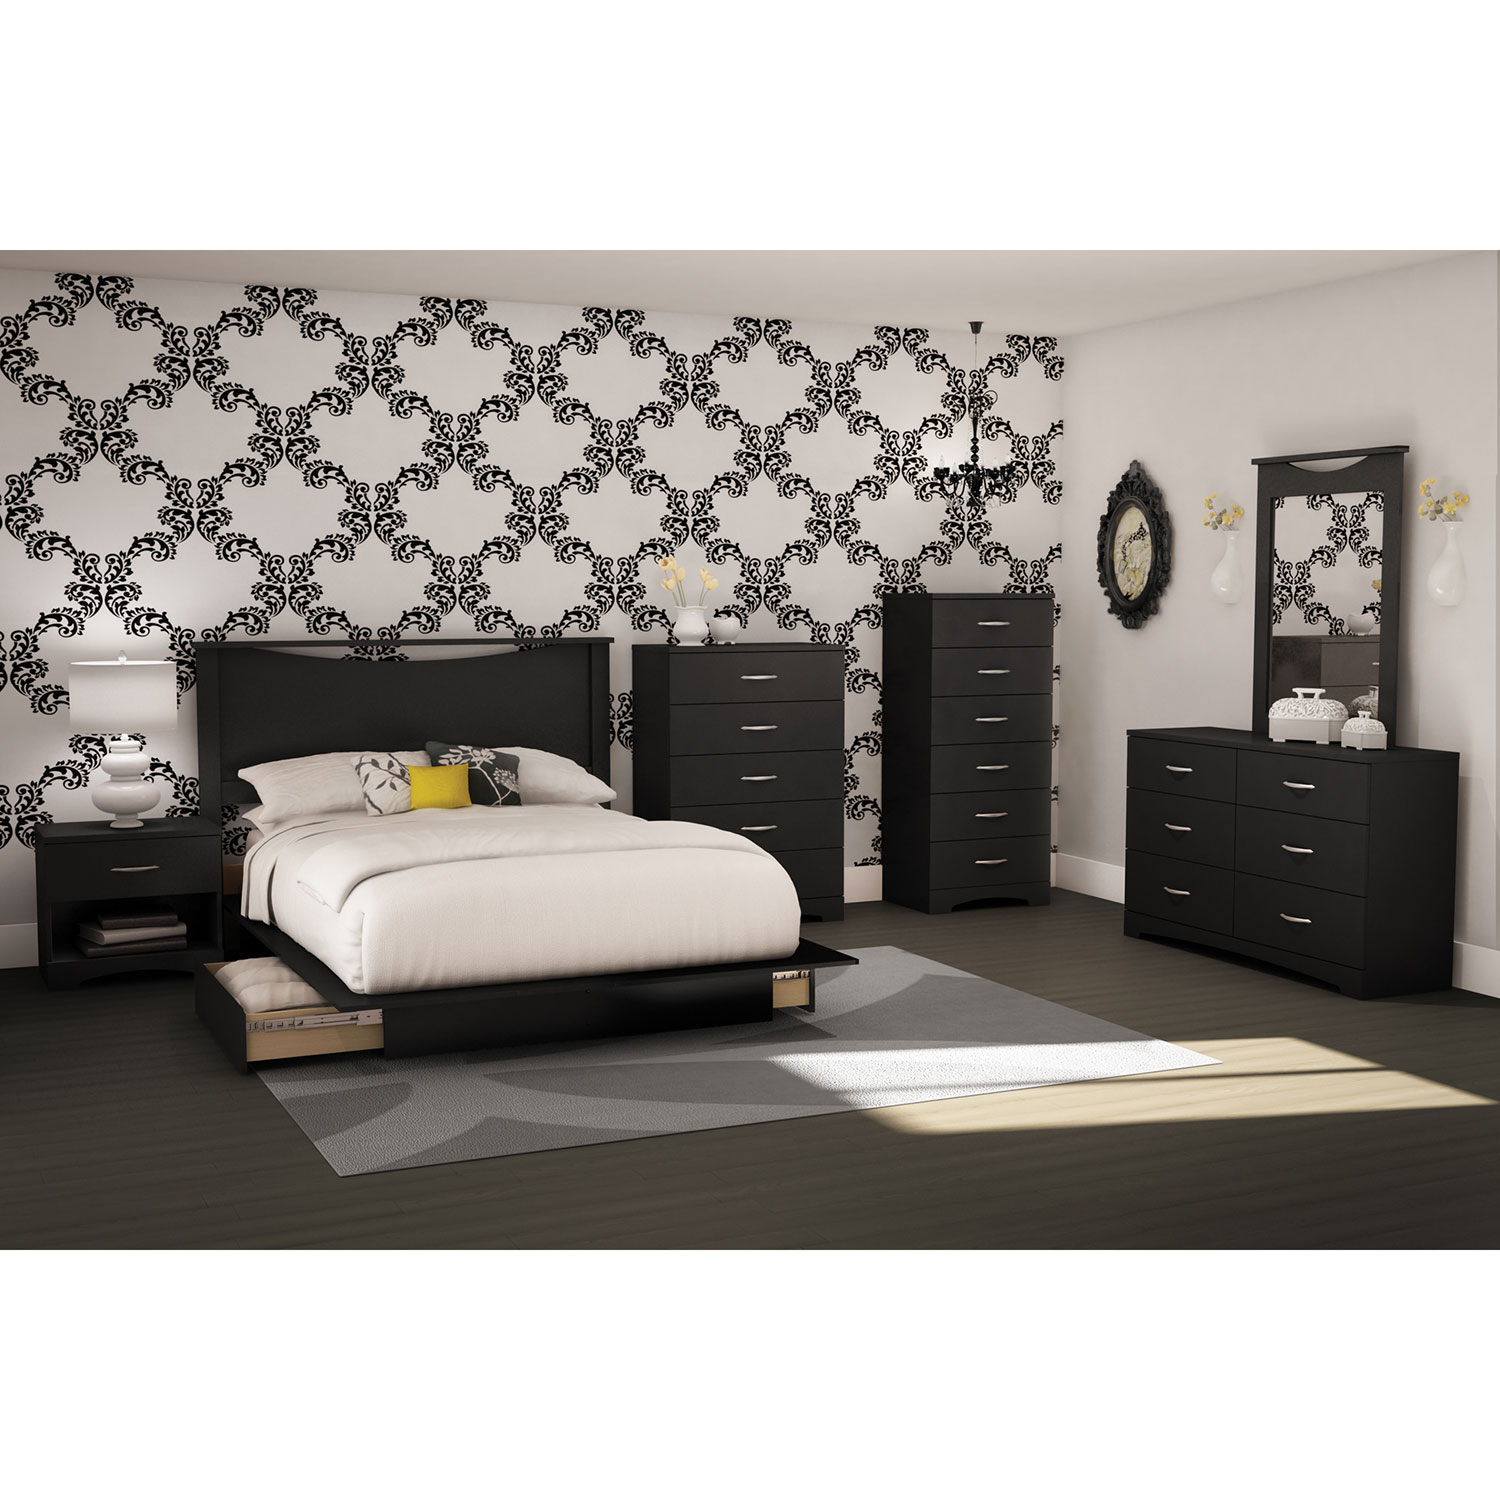 step one contemporary storage bed  queen  black  beds  bed  - step one contemporary storage bed  queen  black  beds  bed frames best buy canada